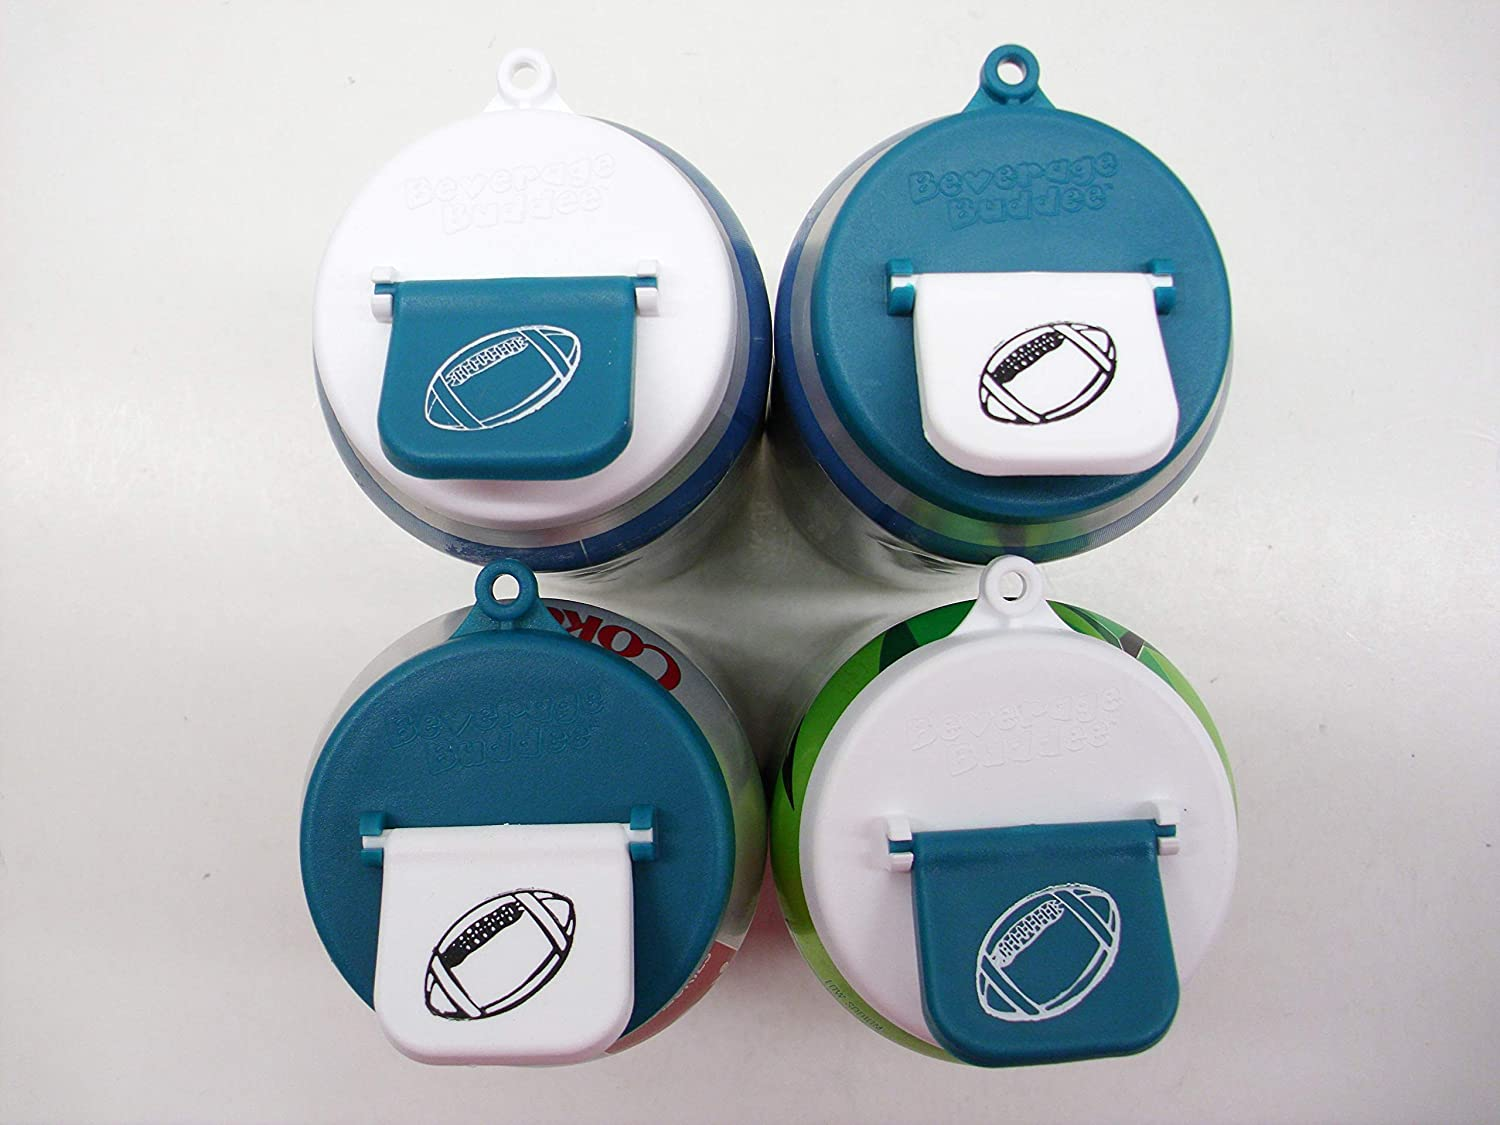 Beverage Buddee Can Cover -Football Imprint - Best Can Cover For Standard Size Soda/Beer/Energy Drink Cans - Made In The USA - BPA-PCB Free - 4 Pack (Green/White)